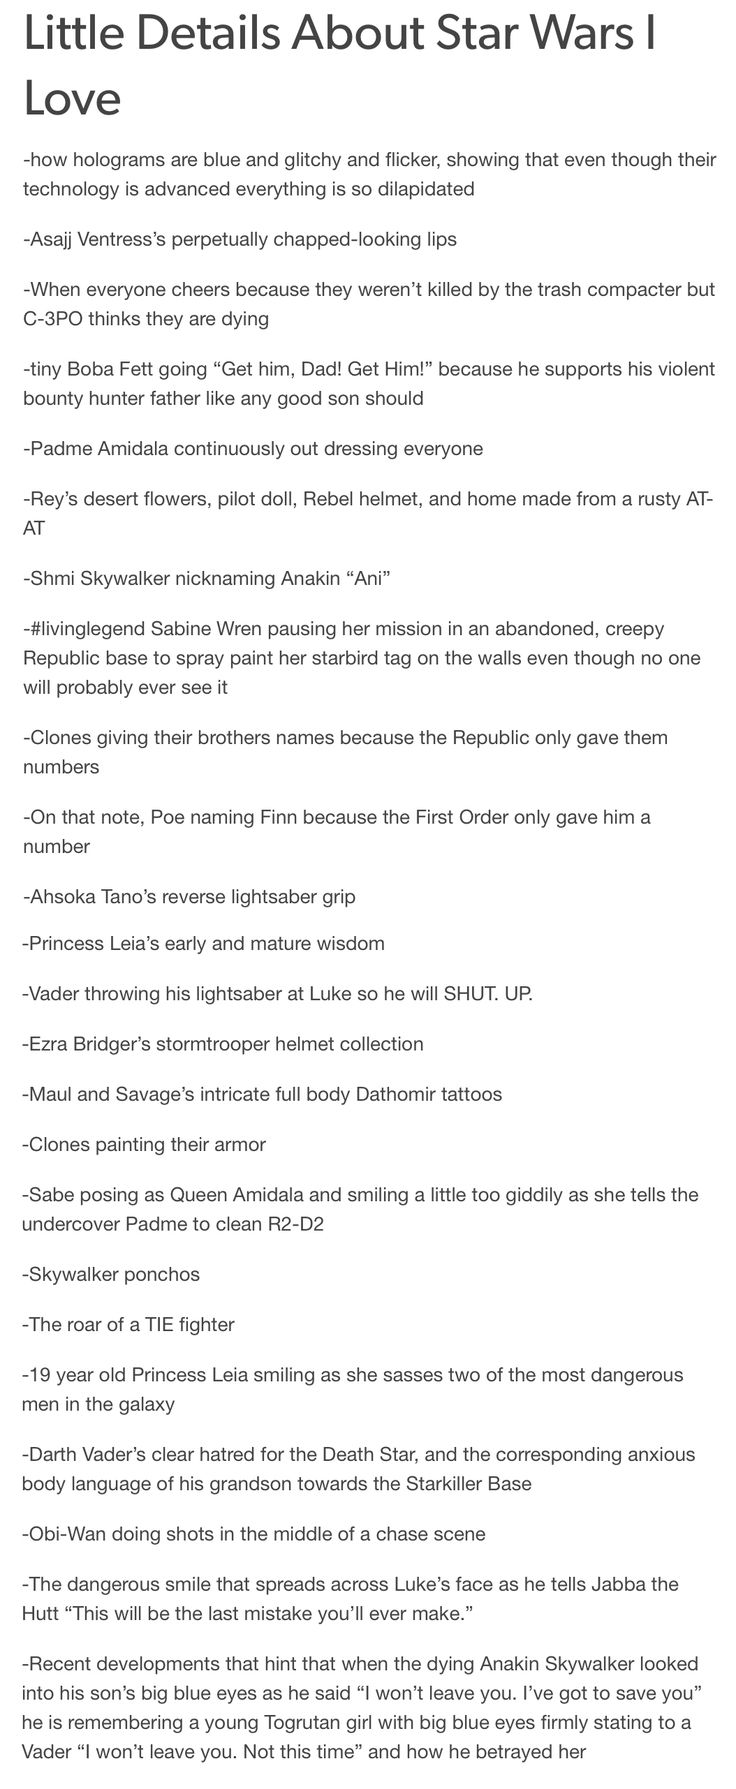 Little Details About Star Wars I Love<<<< THAT LAST ONE HURT SO MUCH!!!!